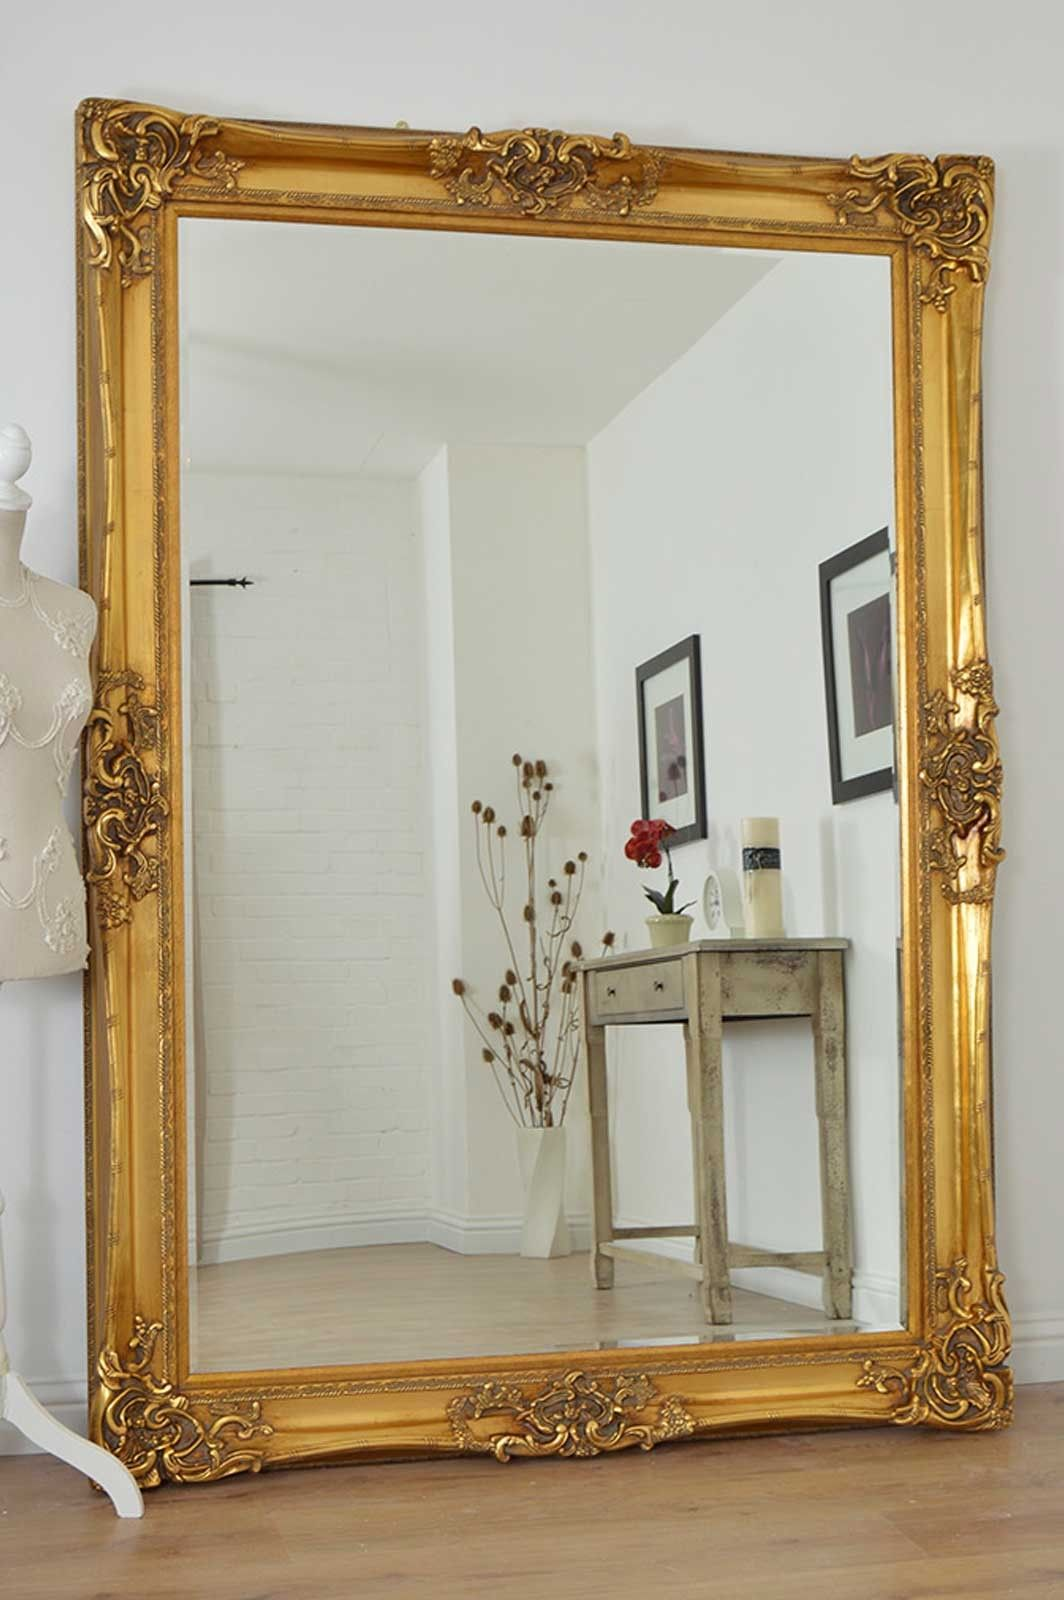 Large gold very ornate antique design wall mirror 7ft x for Big framed mirror